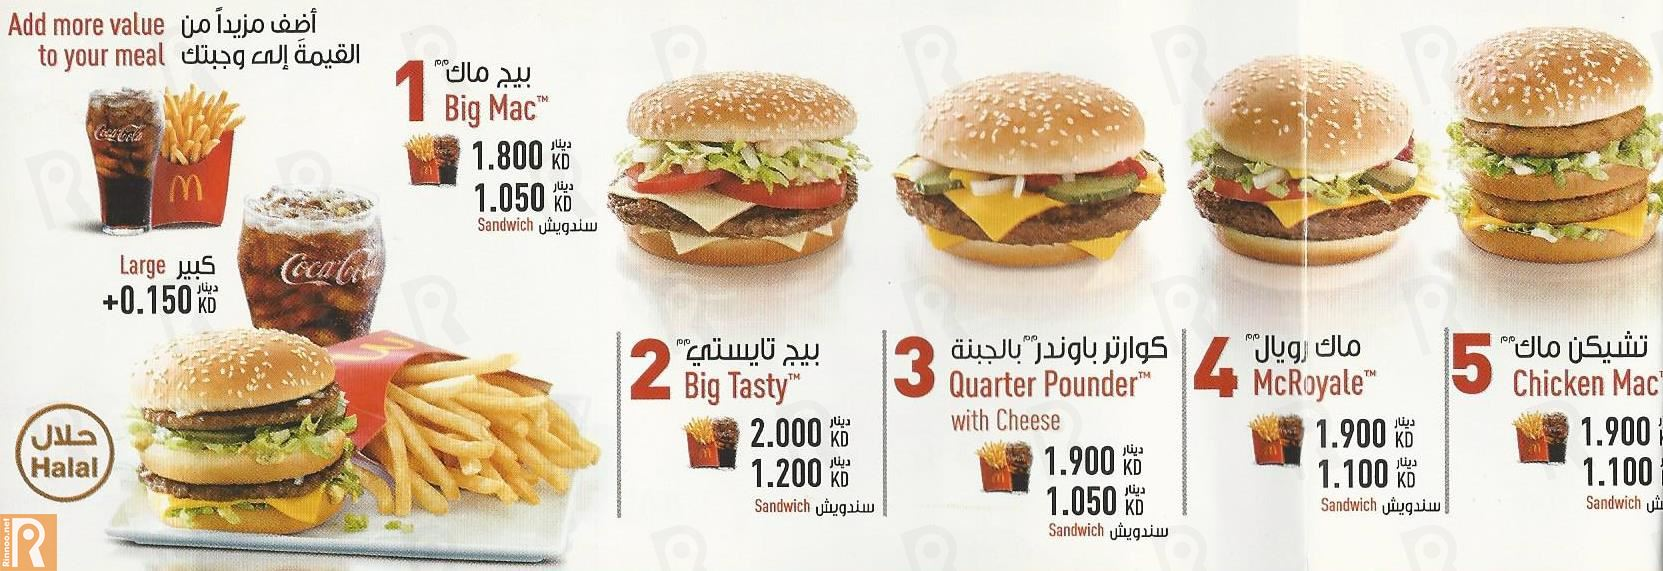 McDonald\'s Restaurant Menu and Meals Prices :: Rinnoo.net Website